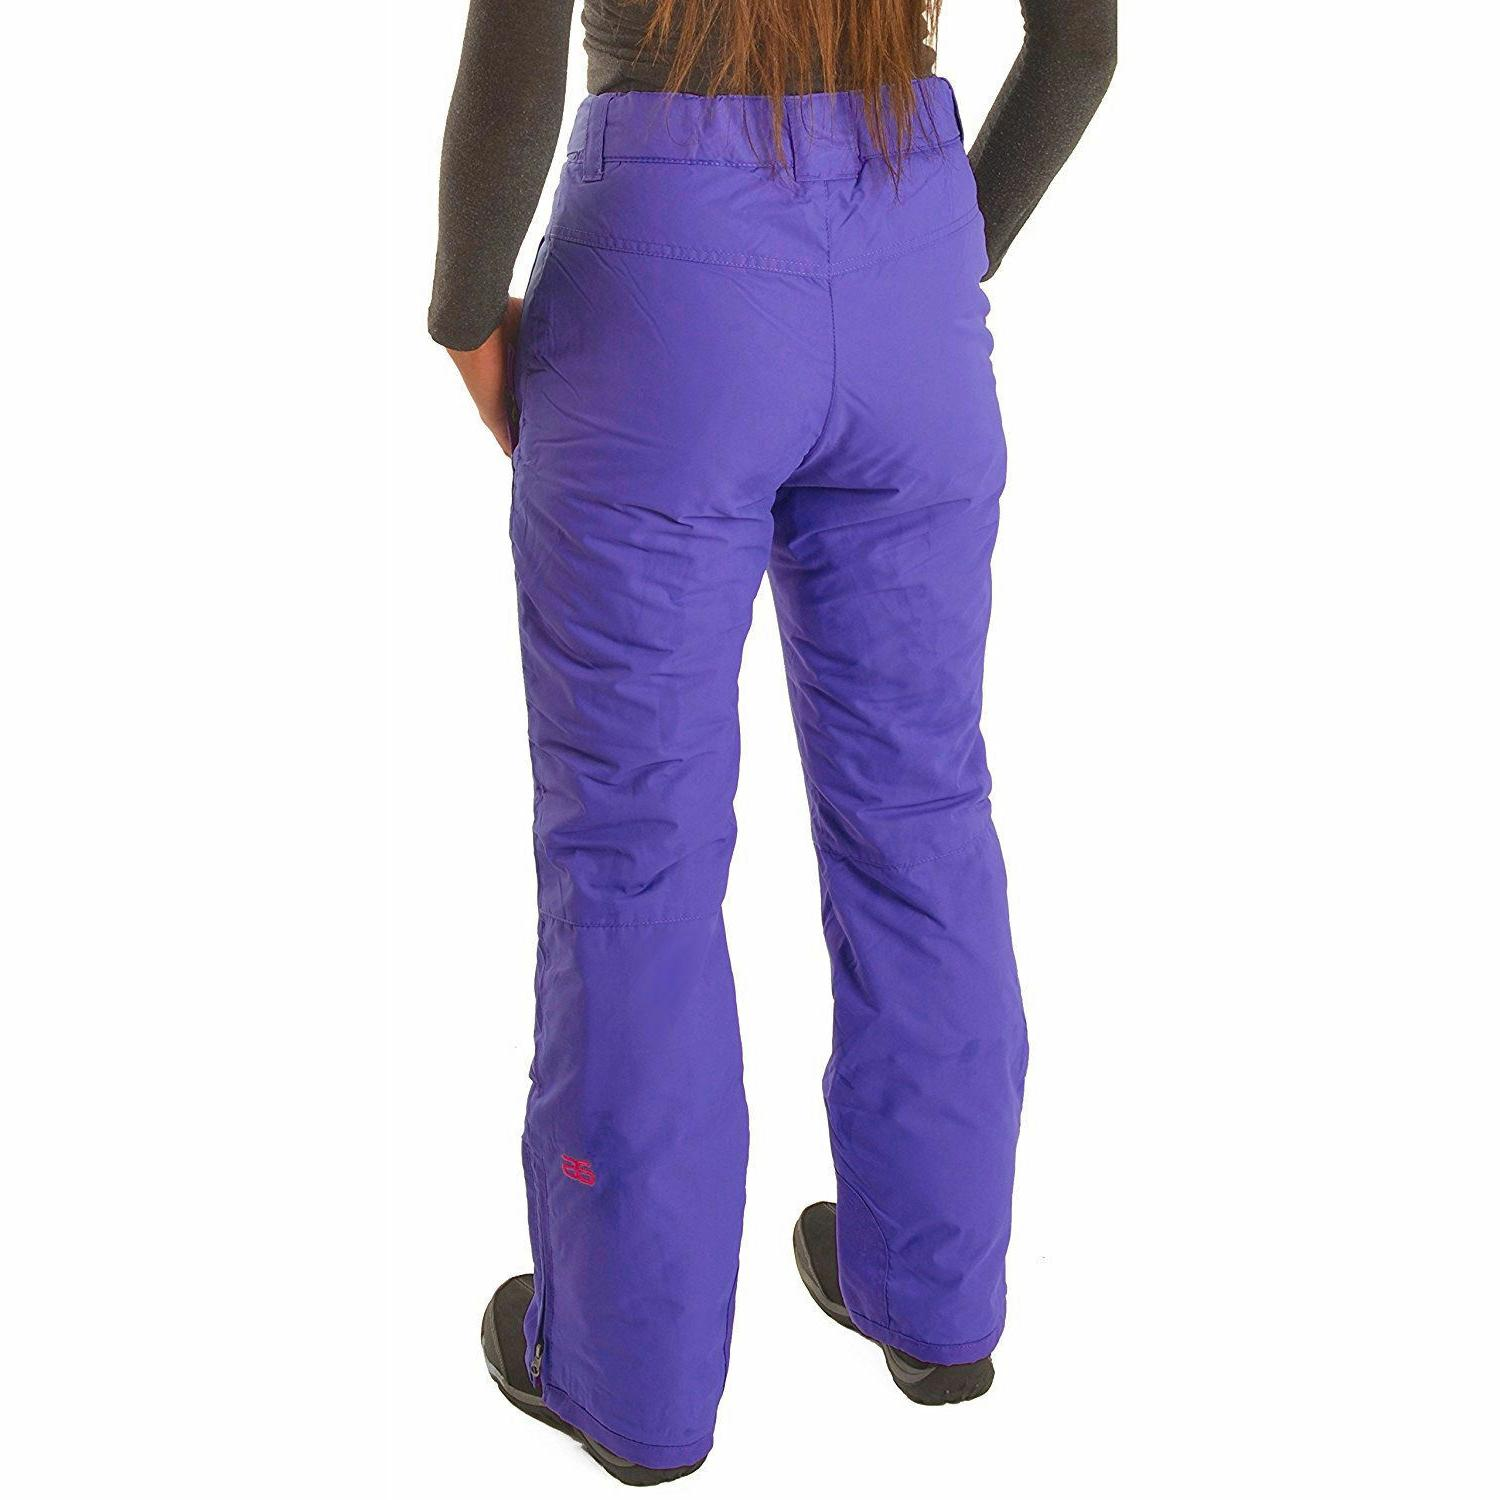 Skigear Arctix PL1800 Insulated Ski Pants